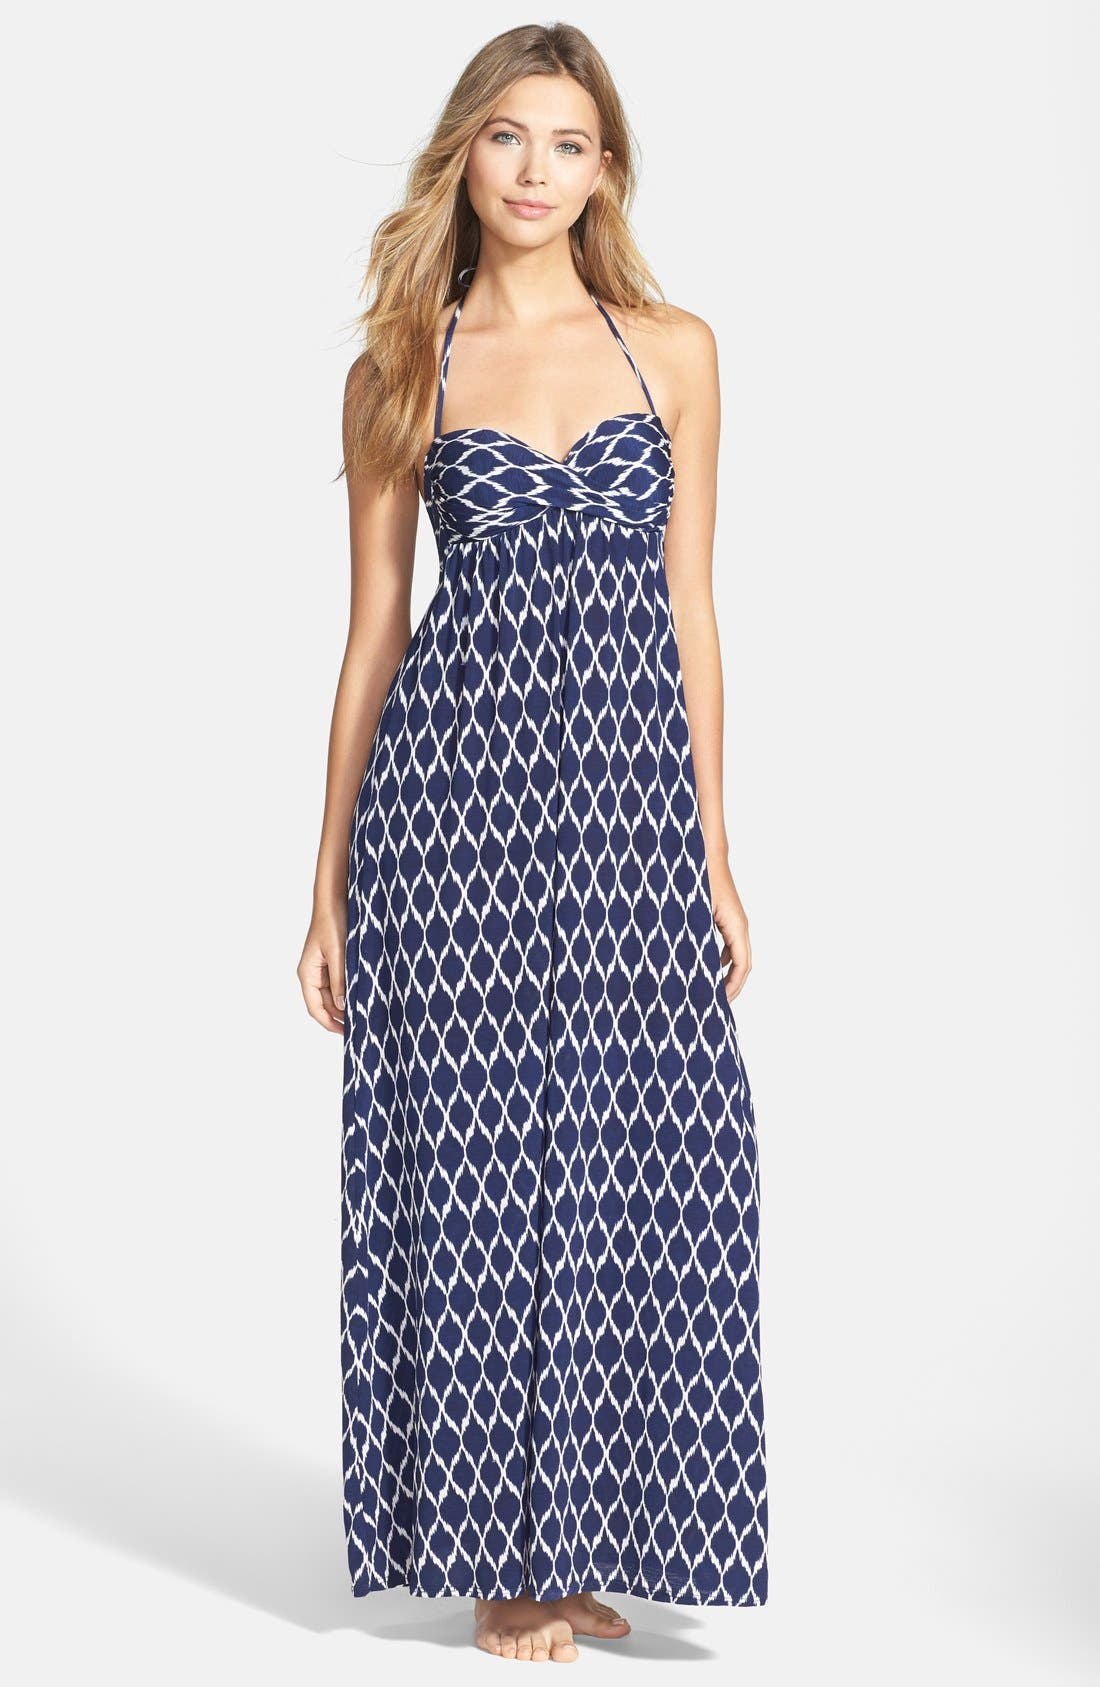 Alternate Image 1 Selected - Robin Piccone Ikat Print Halter Cover-Up Dress